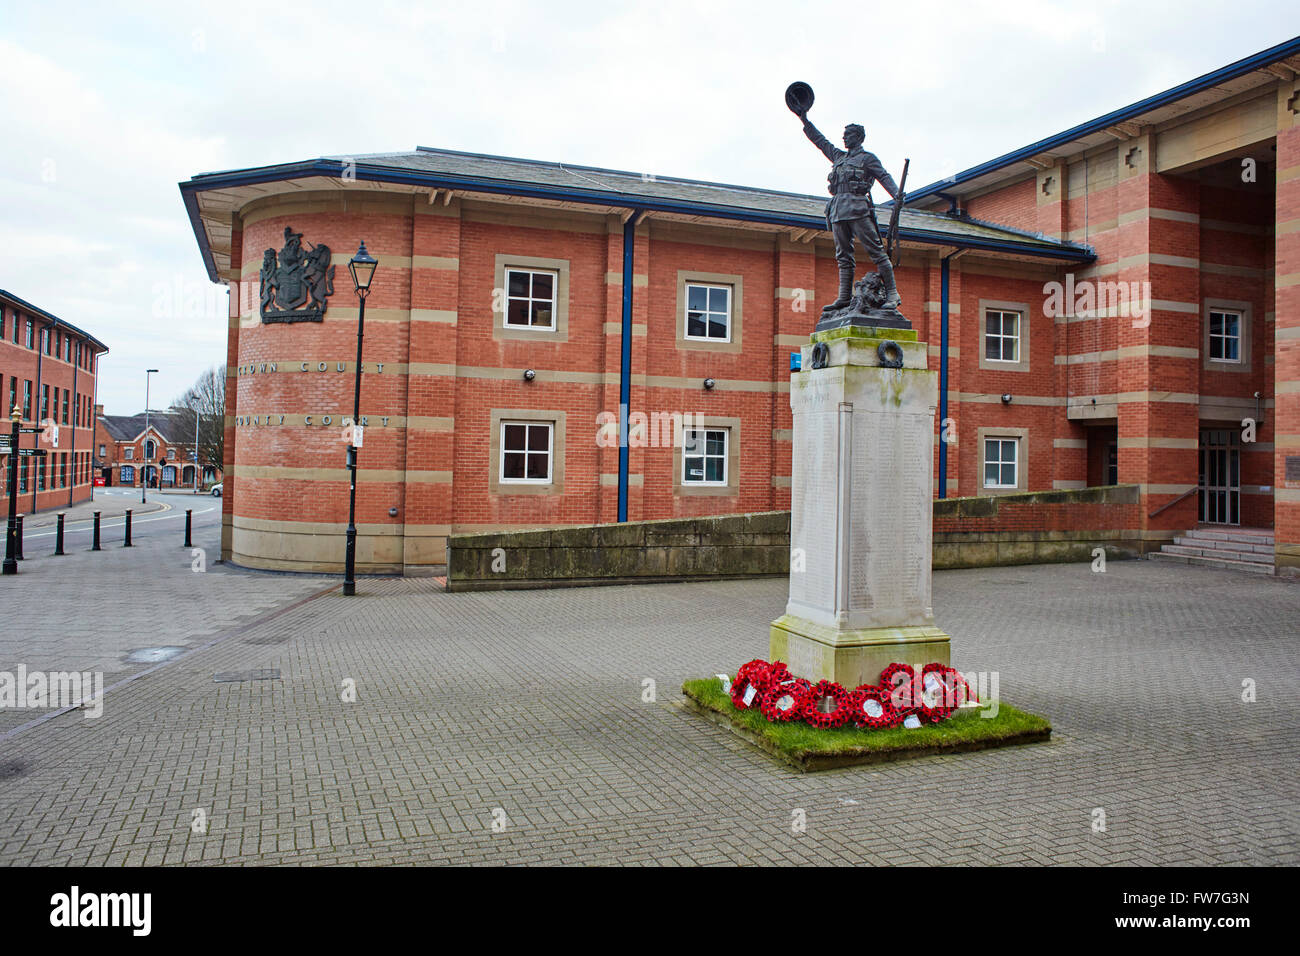 Stafford Crown Court Building Stock Photos & Stafford Crown